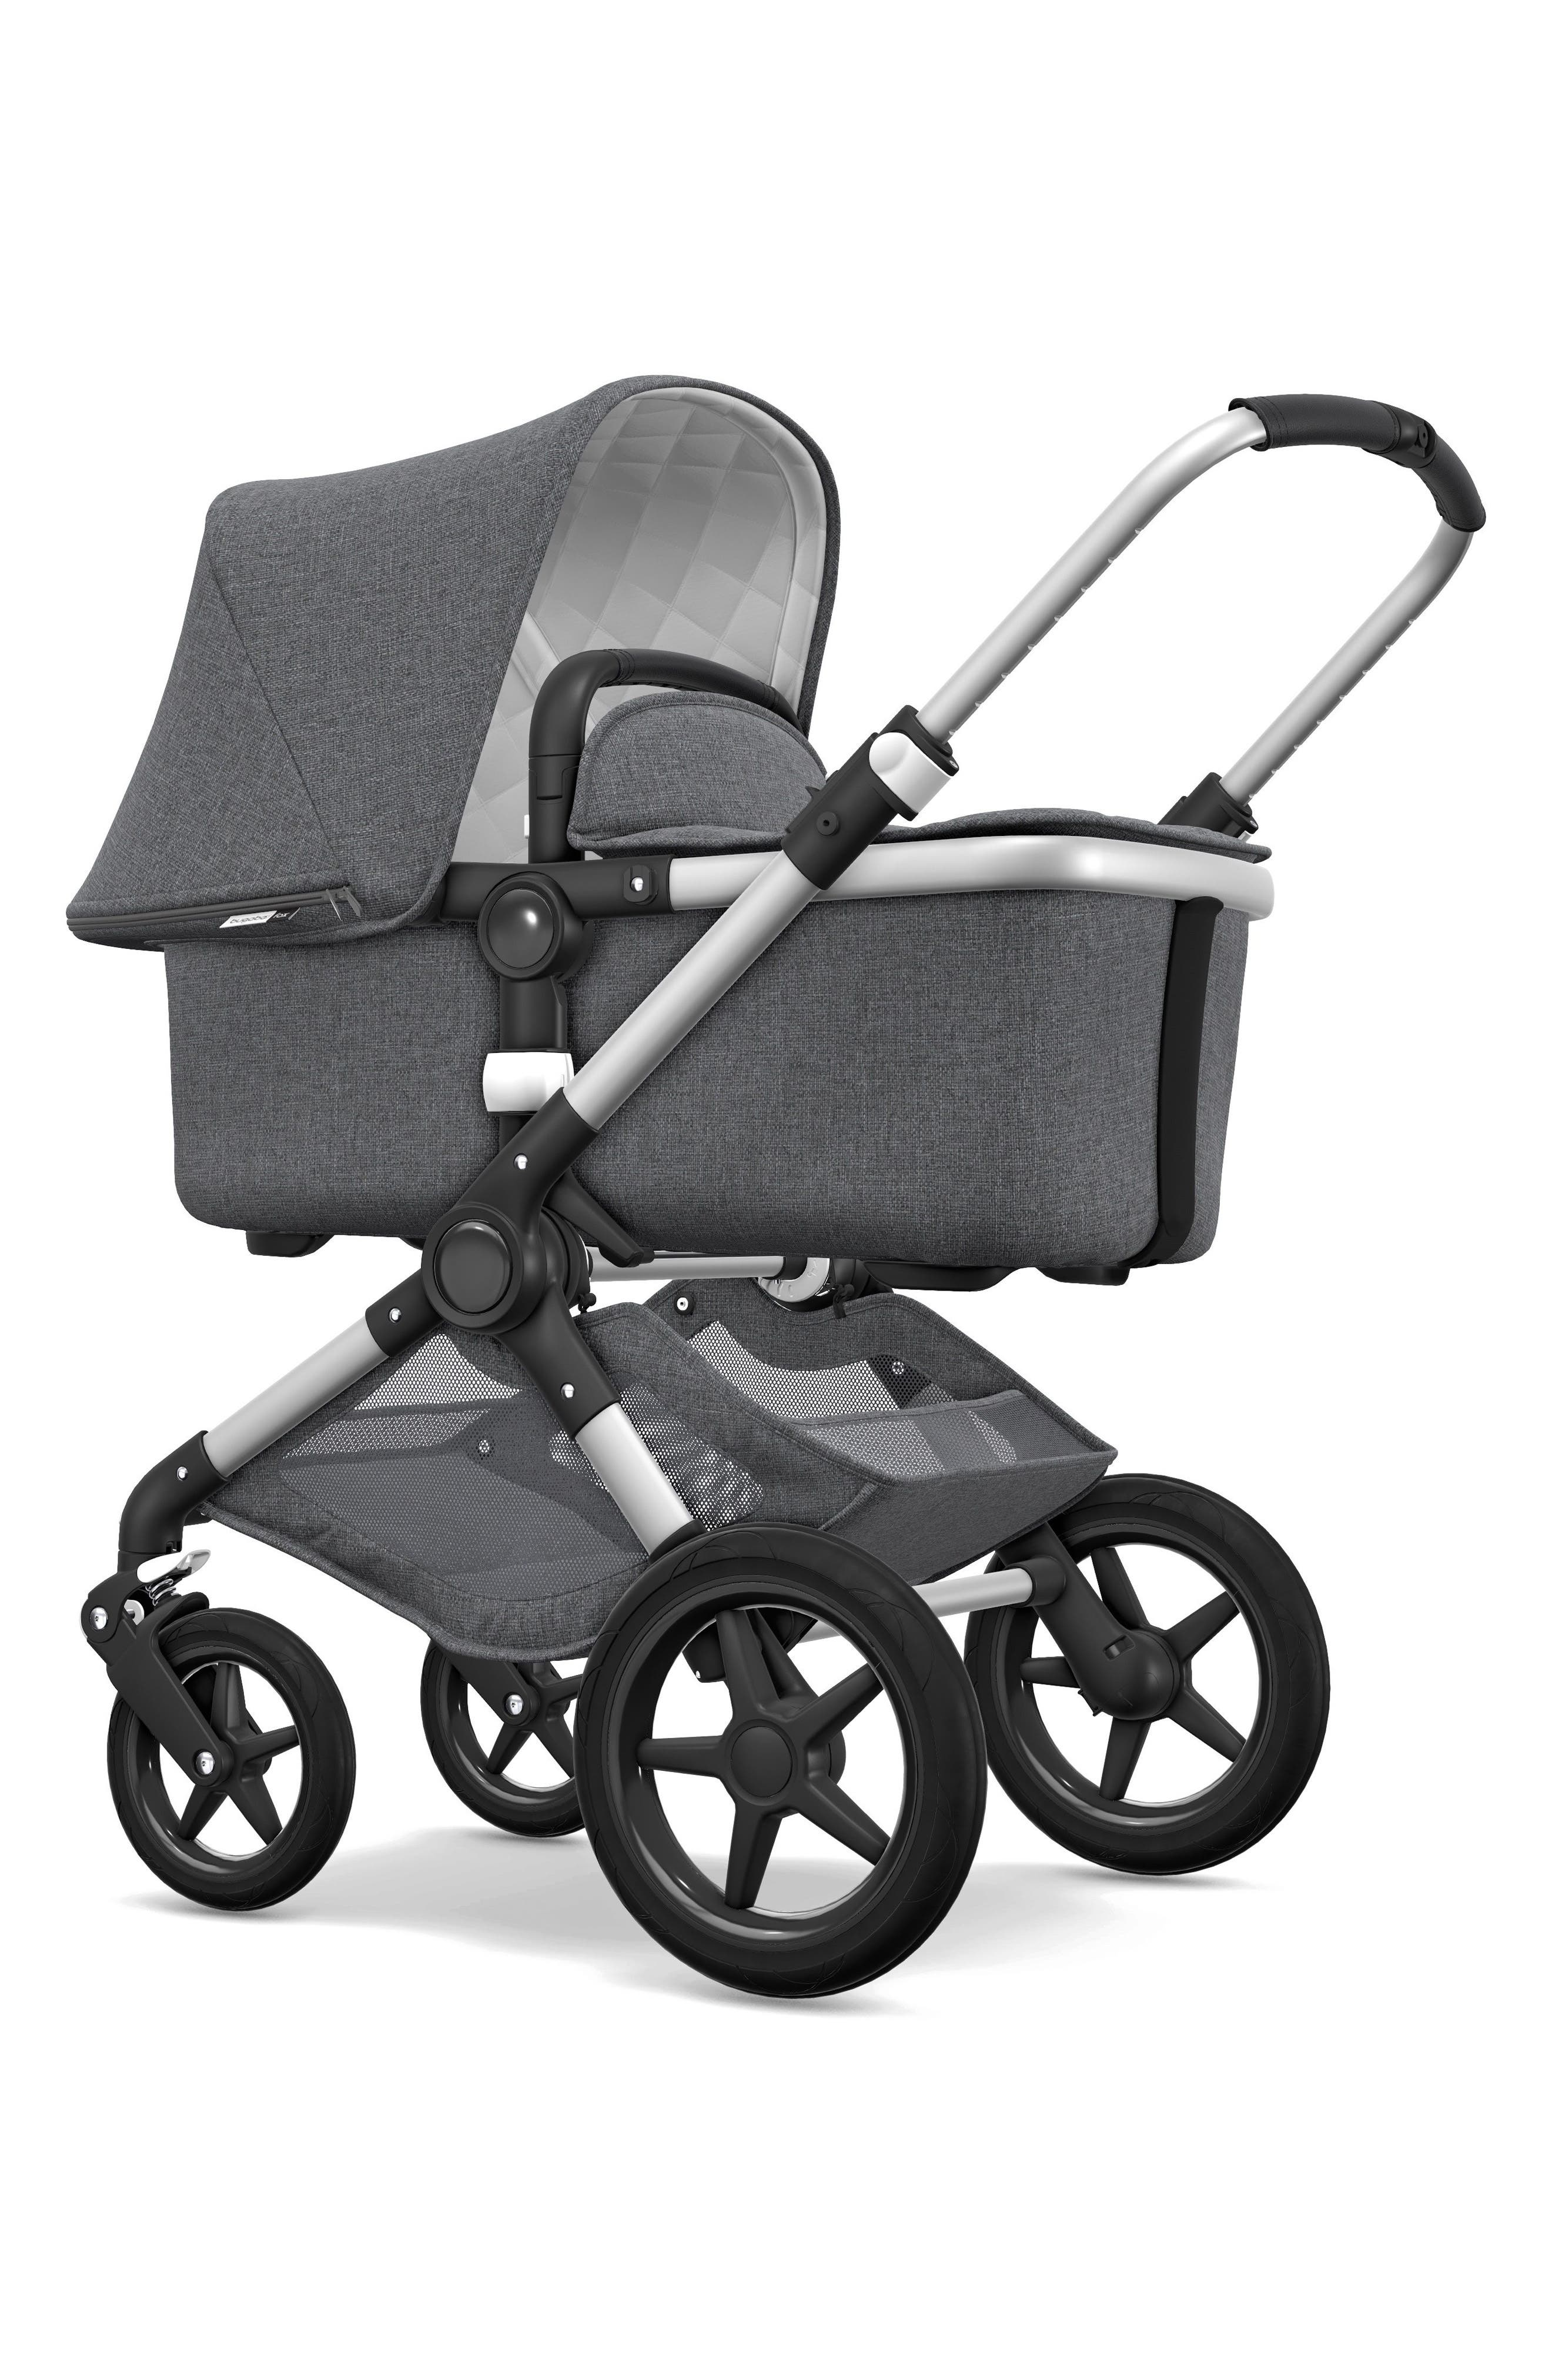 Fox Classic Complete Stroller with Bassinet,                             Alternate thumbnail 2, color,                             GREY MELANGE/ ALUMINUM